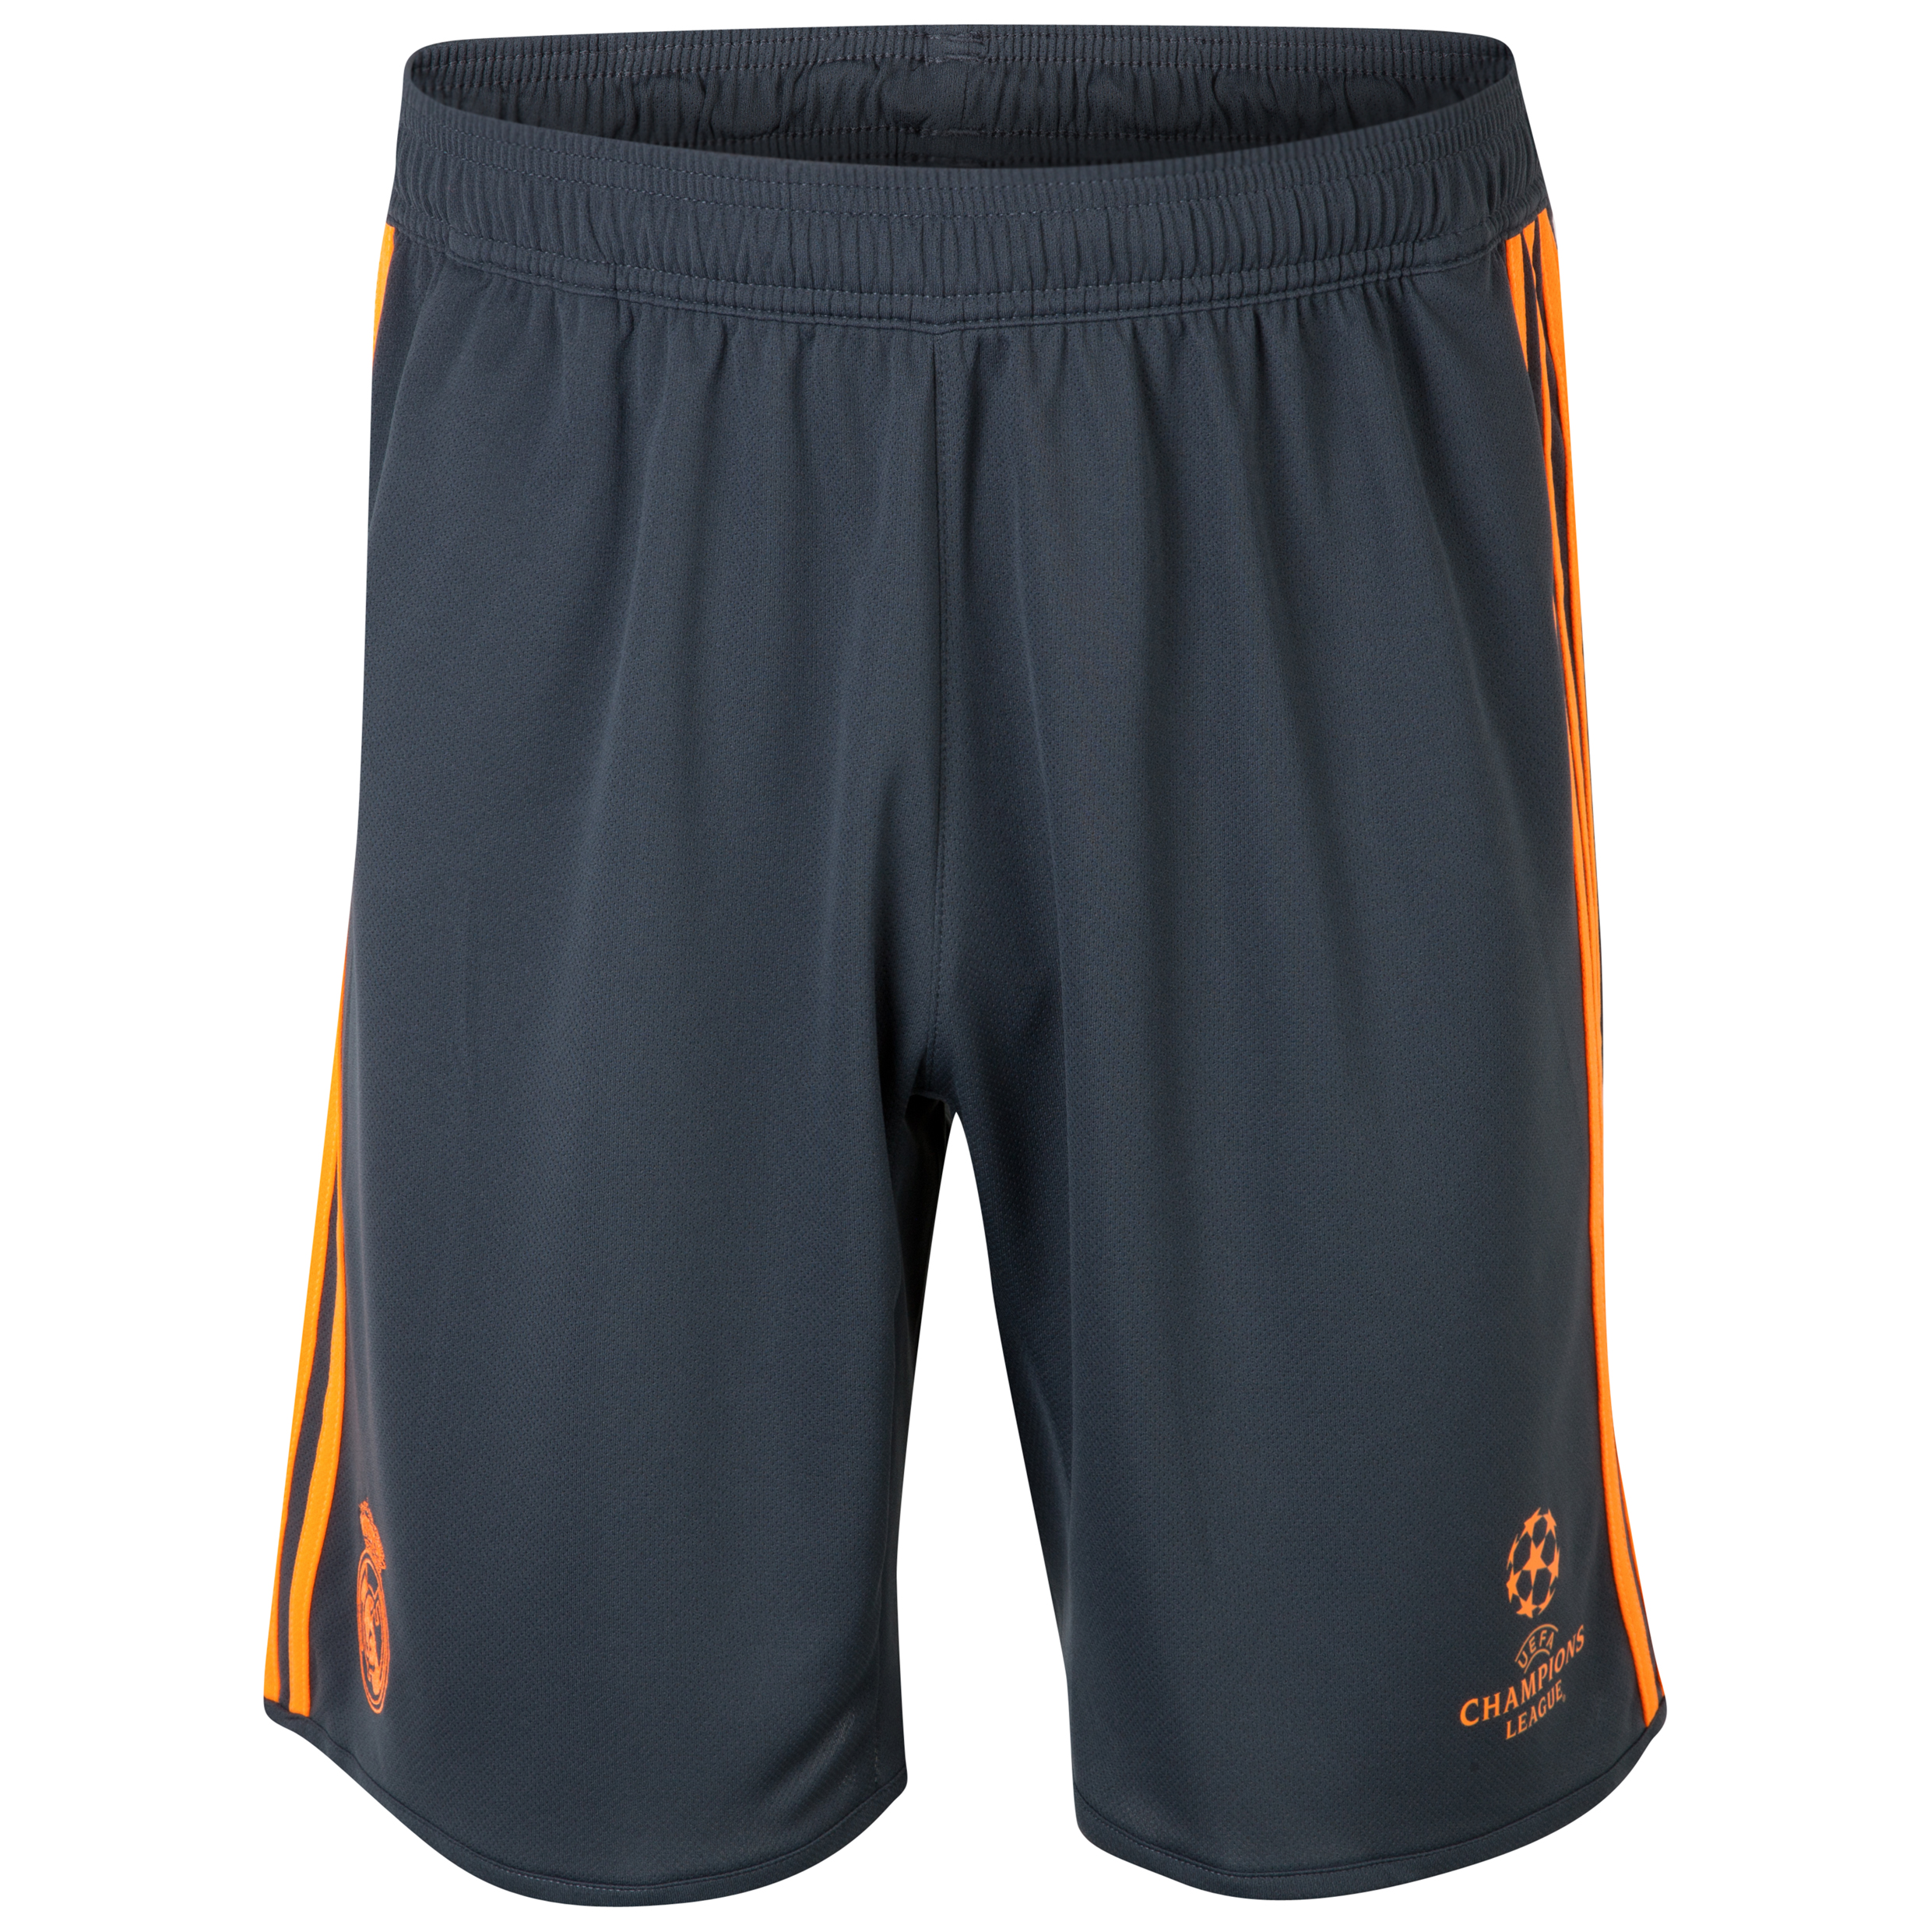 Real Madrid UCL Training Shorts  - Dark Shale/Zest Dk Blue